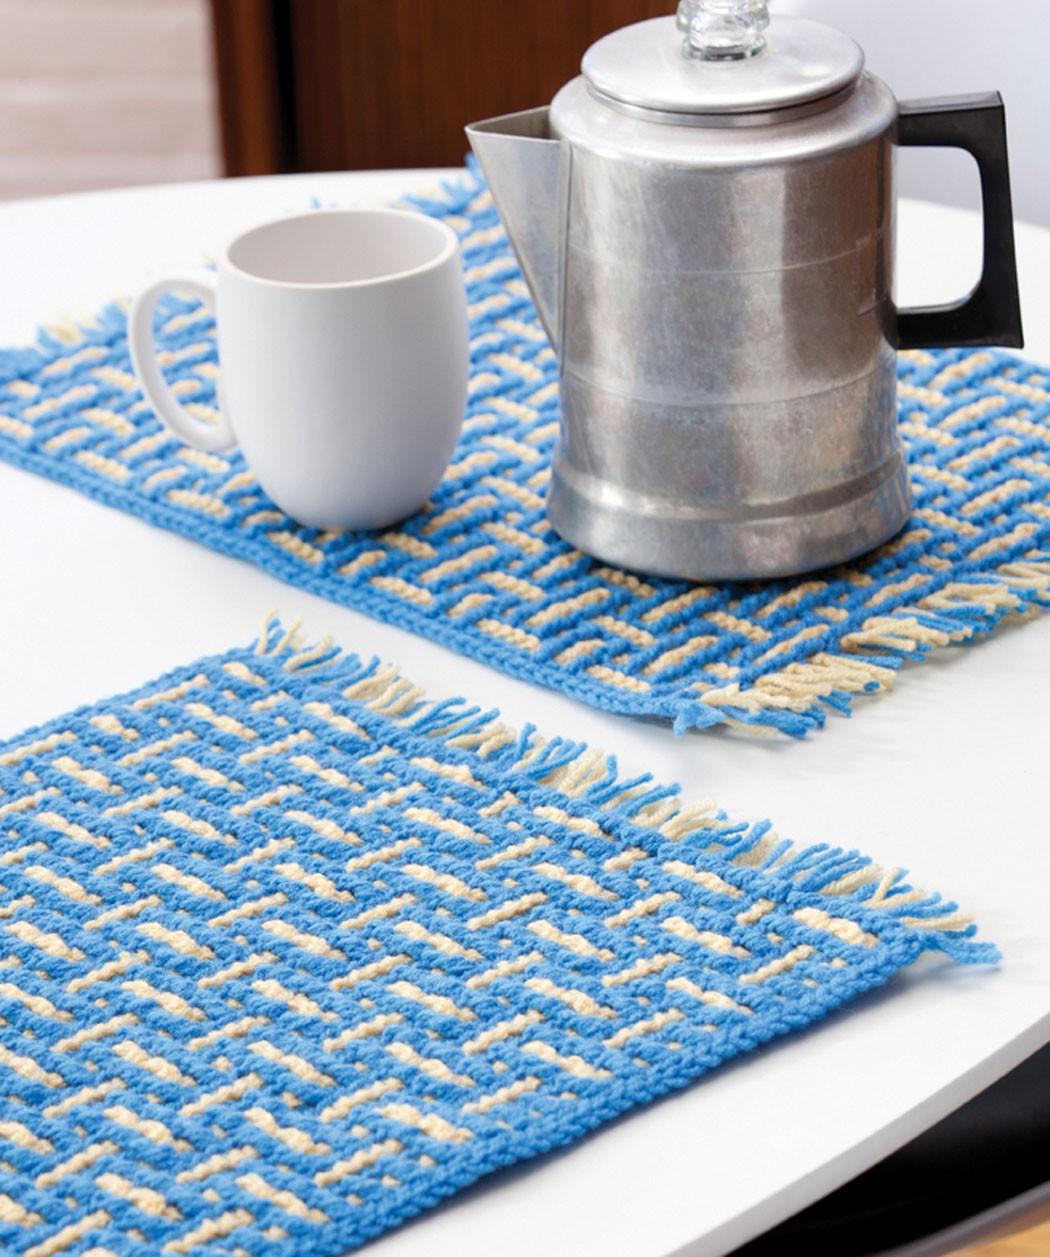 Crocheting Placemats : Placemat Weaving Patterns Placemat Knitting Pattern